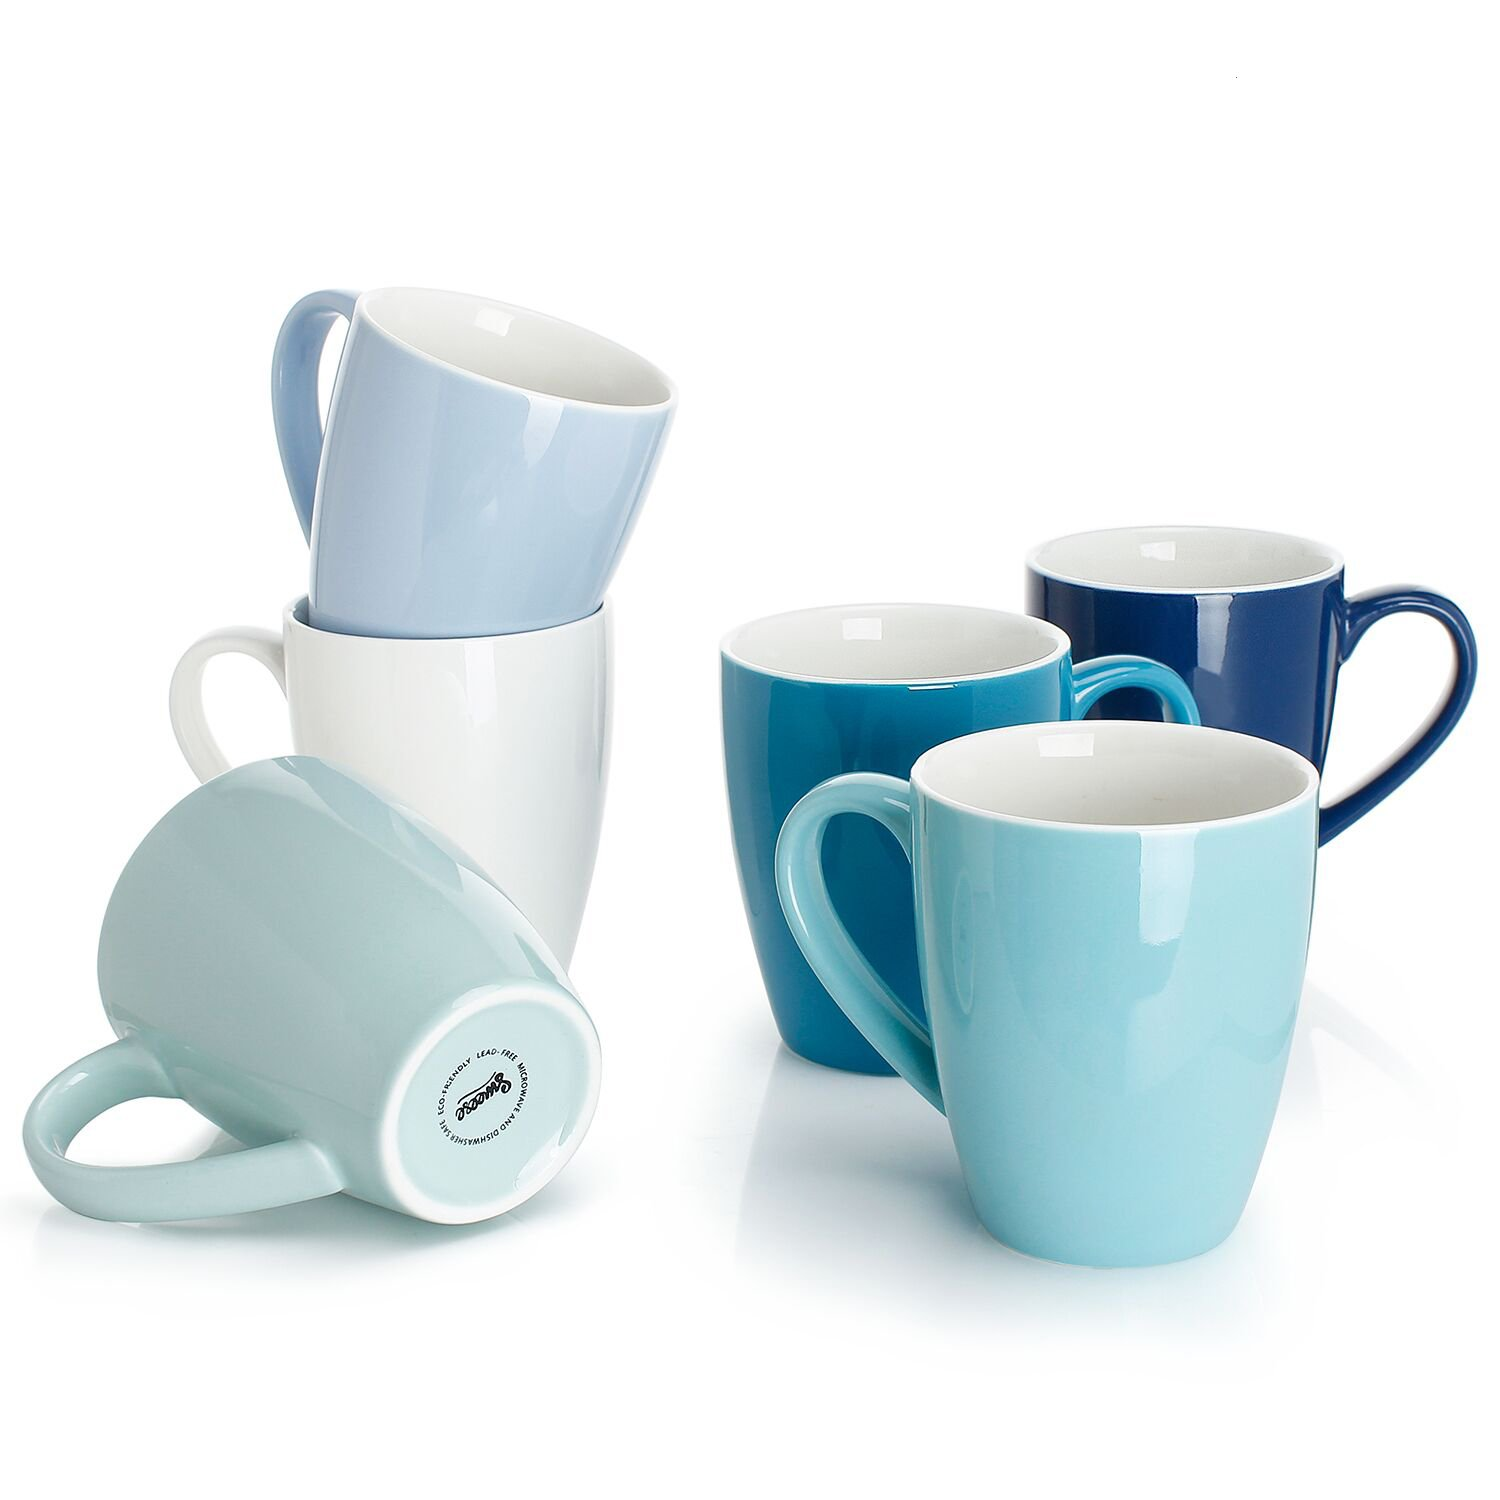 Sweese 601.003 Porcelain Mugs Review Review